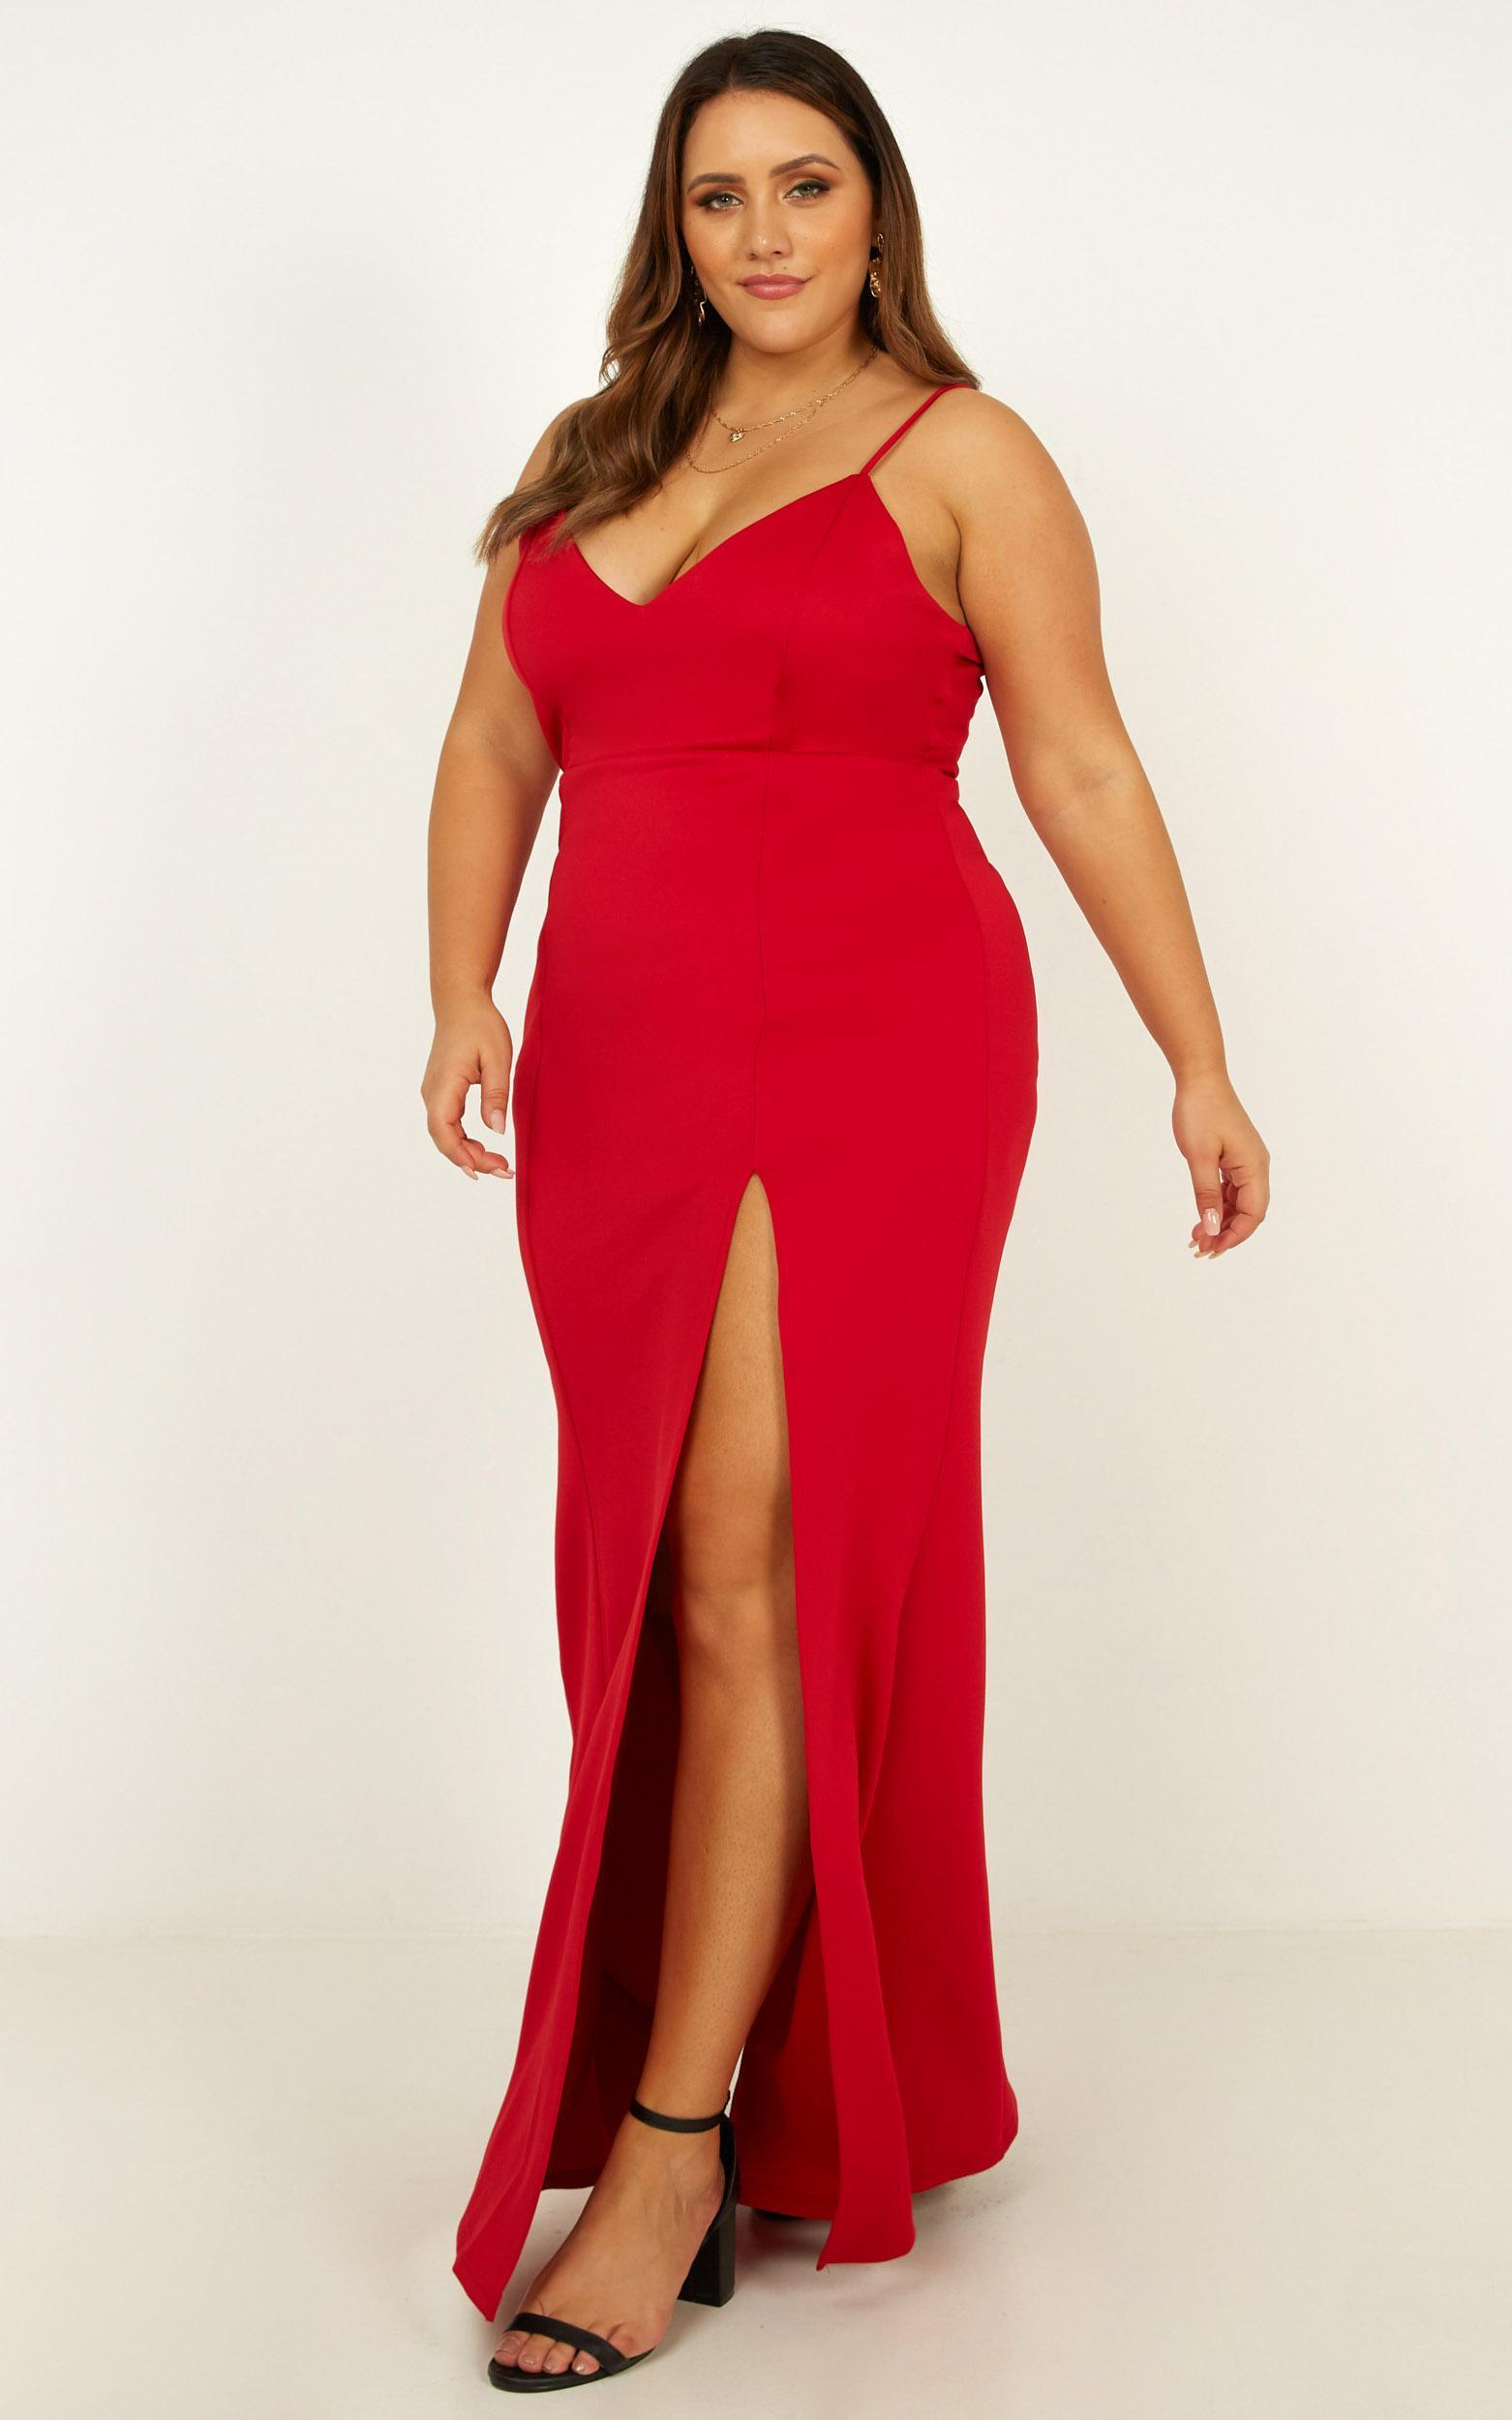 Dare To Dream Maxi Dress in red - 20 (XXXXL), Red, hi-res image number null